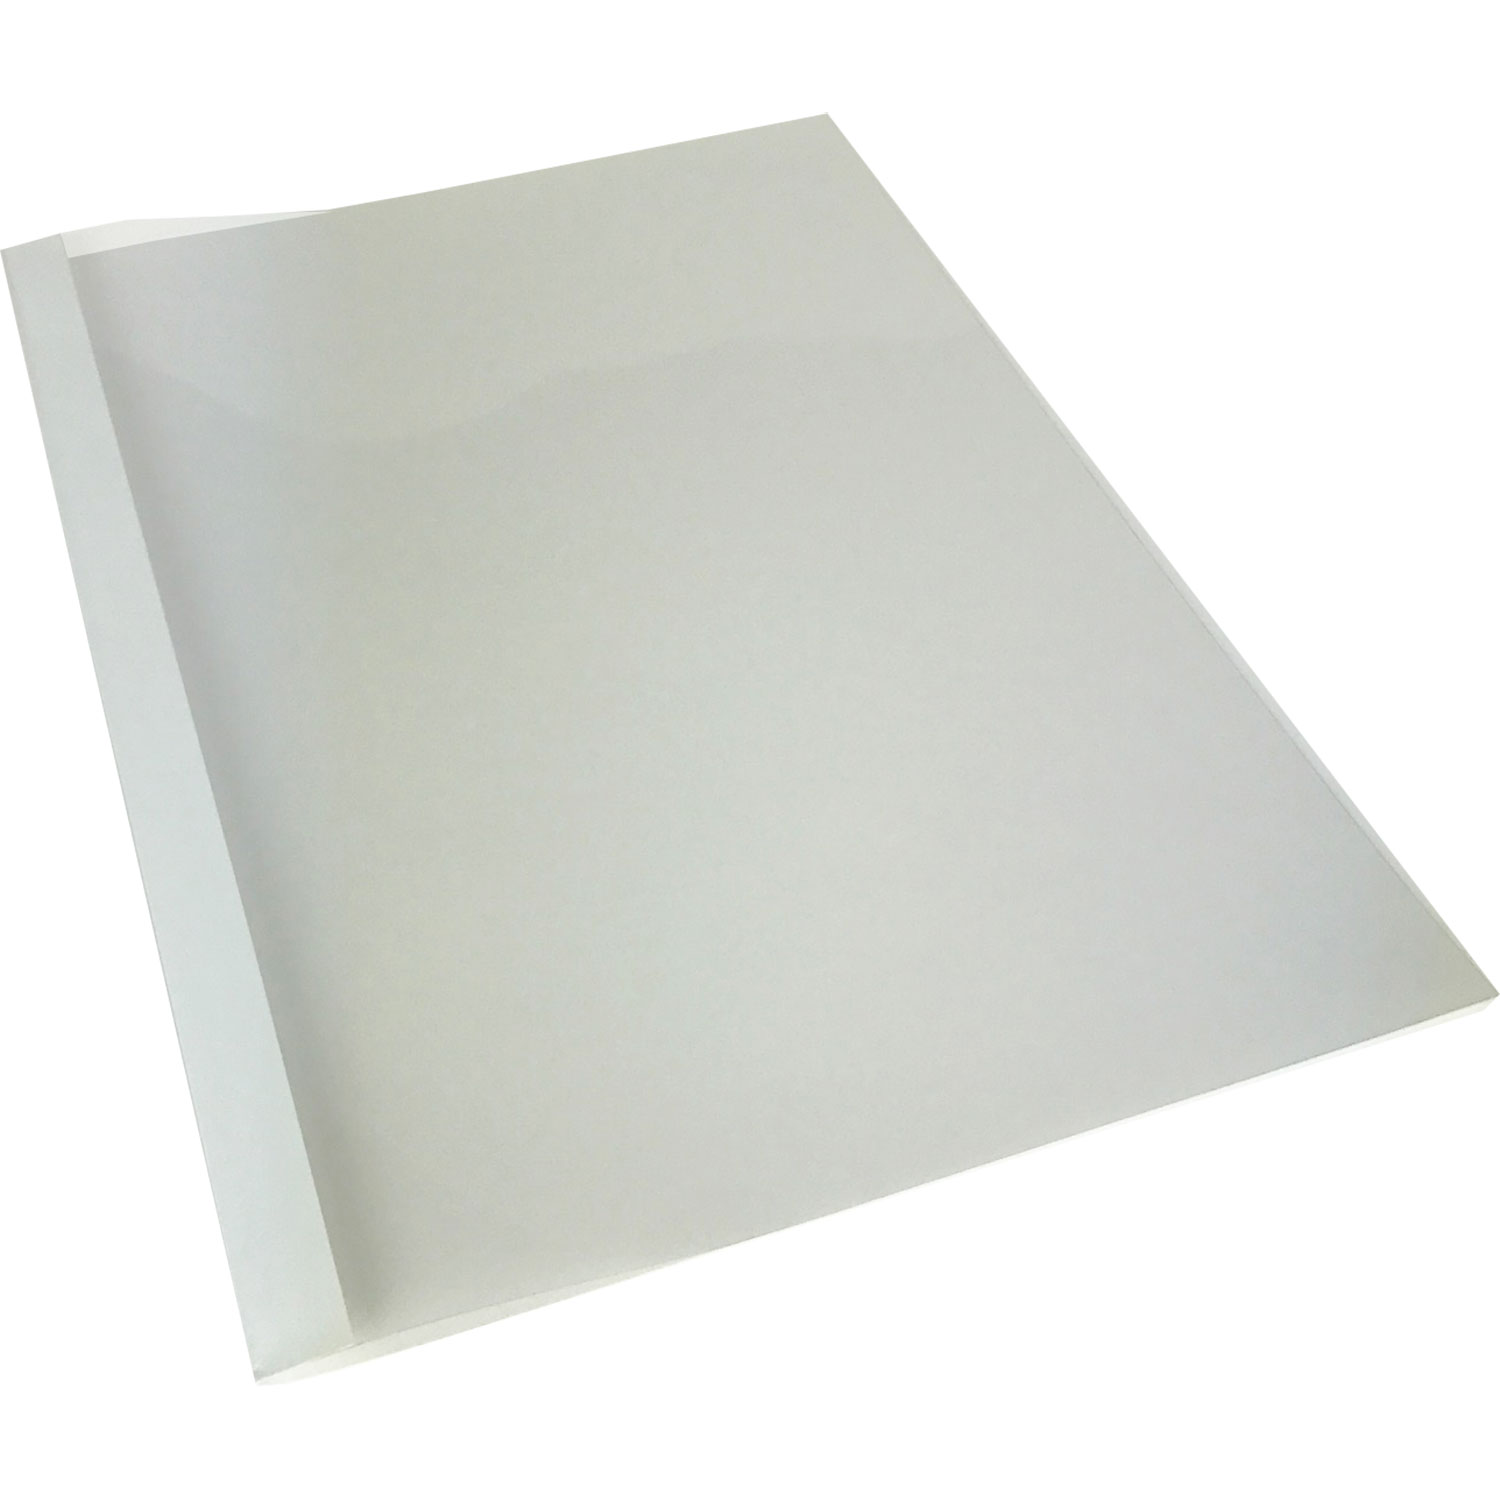 Leitz A4 White 1.5mm Thermal Binding Covers (1000)